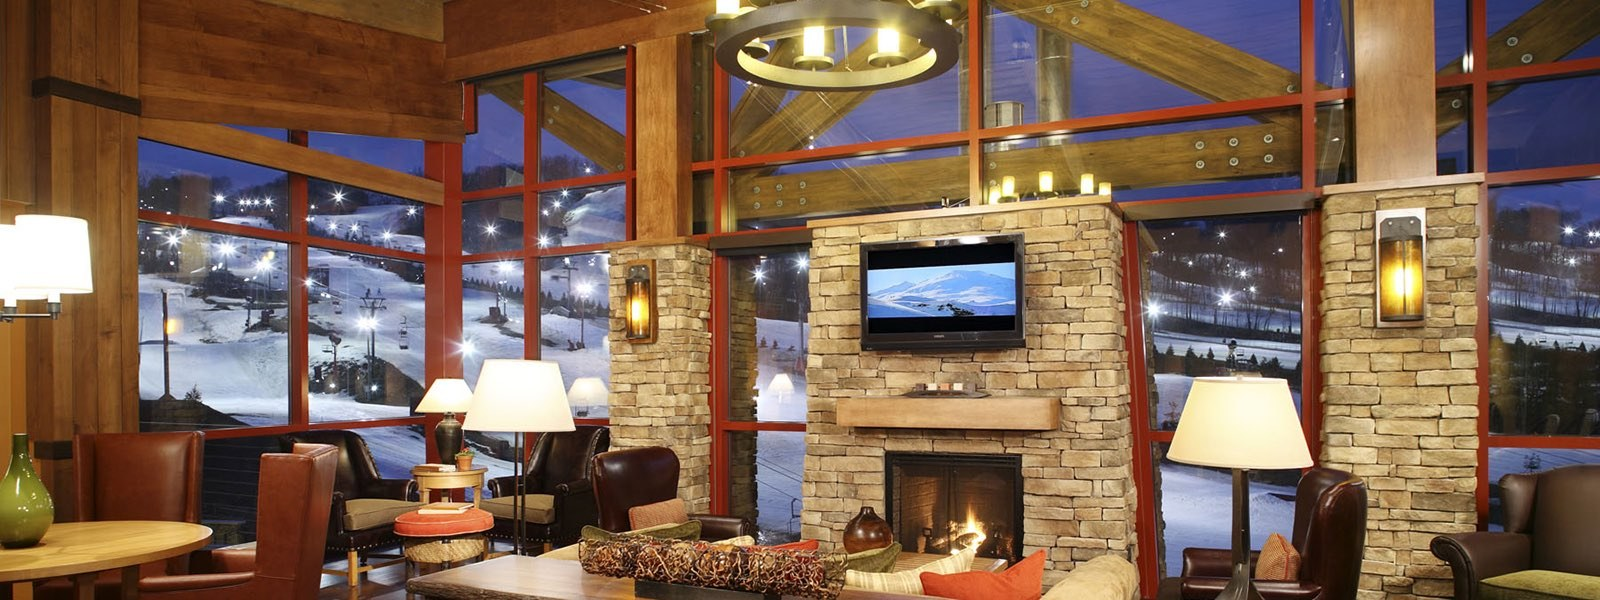 Interior lodge with fireplace and ski resort in background